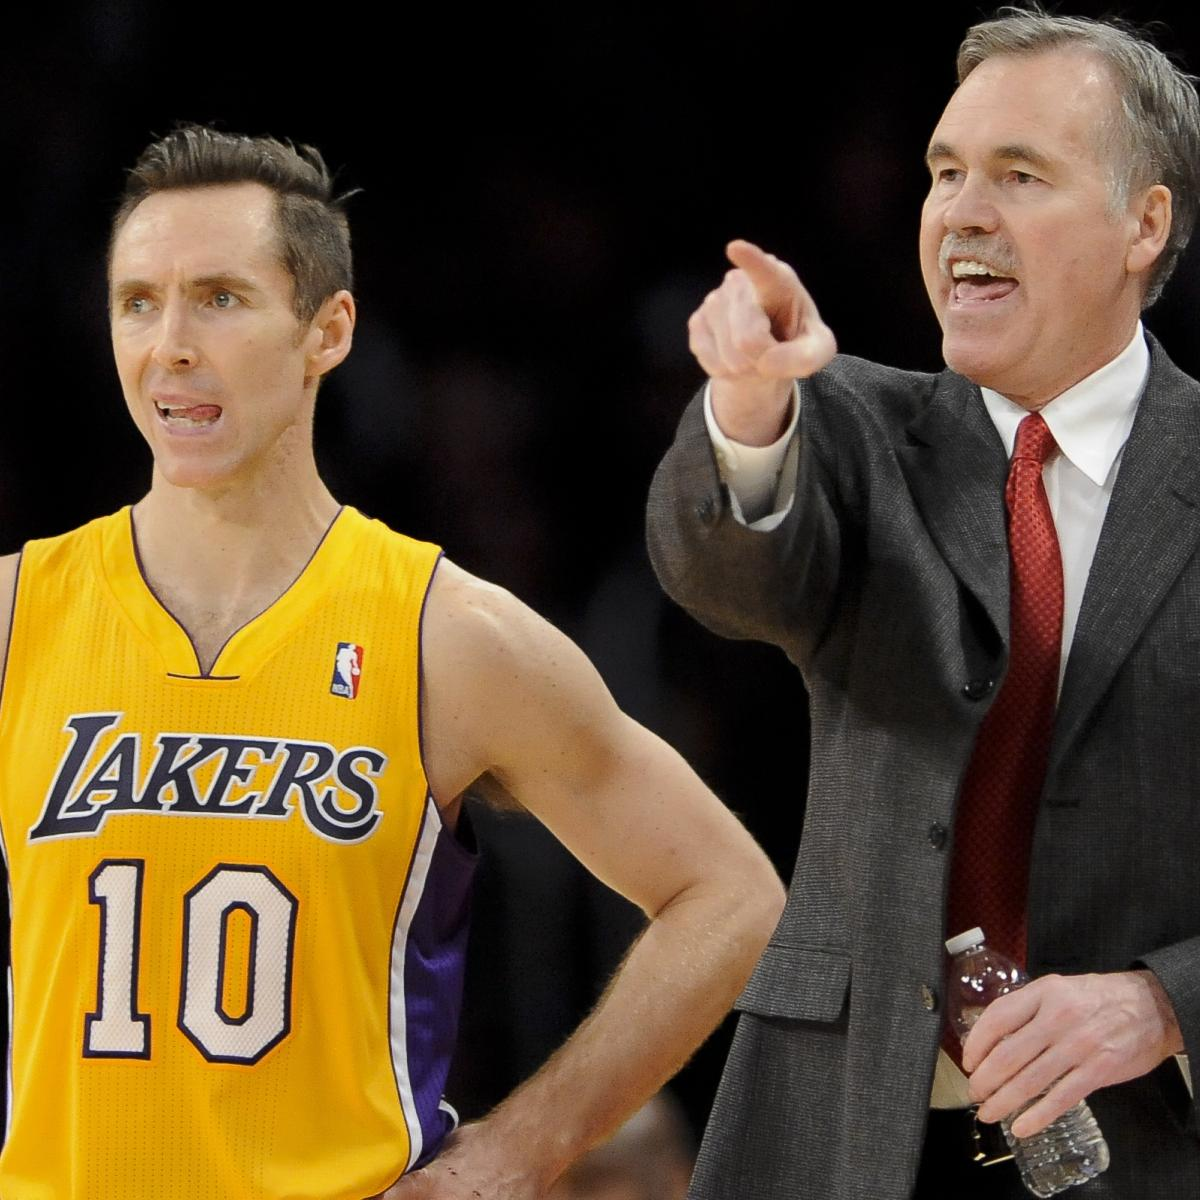 Nets Rumors: Mike D'Antoni, 76ers' Ime Udoka to Be Assistants Under Steve Nash